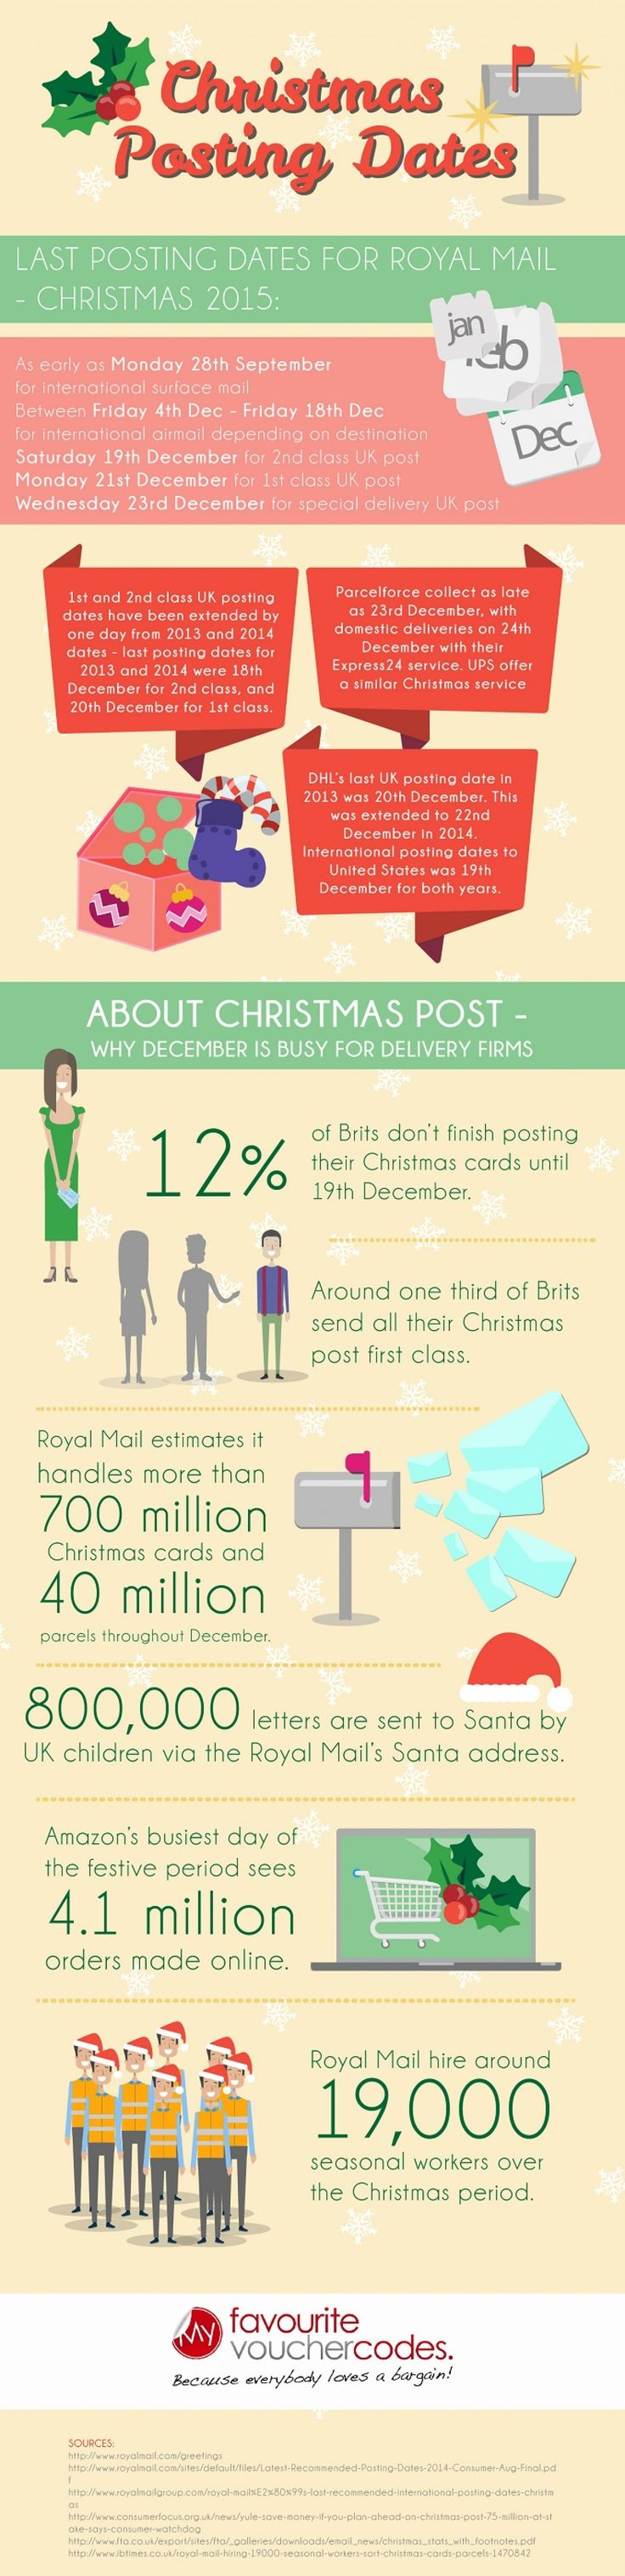 Last Christmas Posting Dates for 2015 - My Favourite Voucher Codes:- Last Posting Dates for Royal Mail - Christmas 2015. My Favourite Voucher Codes is a money saving voucher code website set up to help consumers to not only save money off their online shopping, but to help raise money for good causes by pledging to donate each month 20% of its net profits to charity.